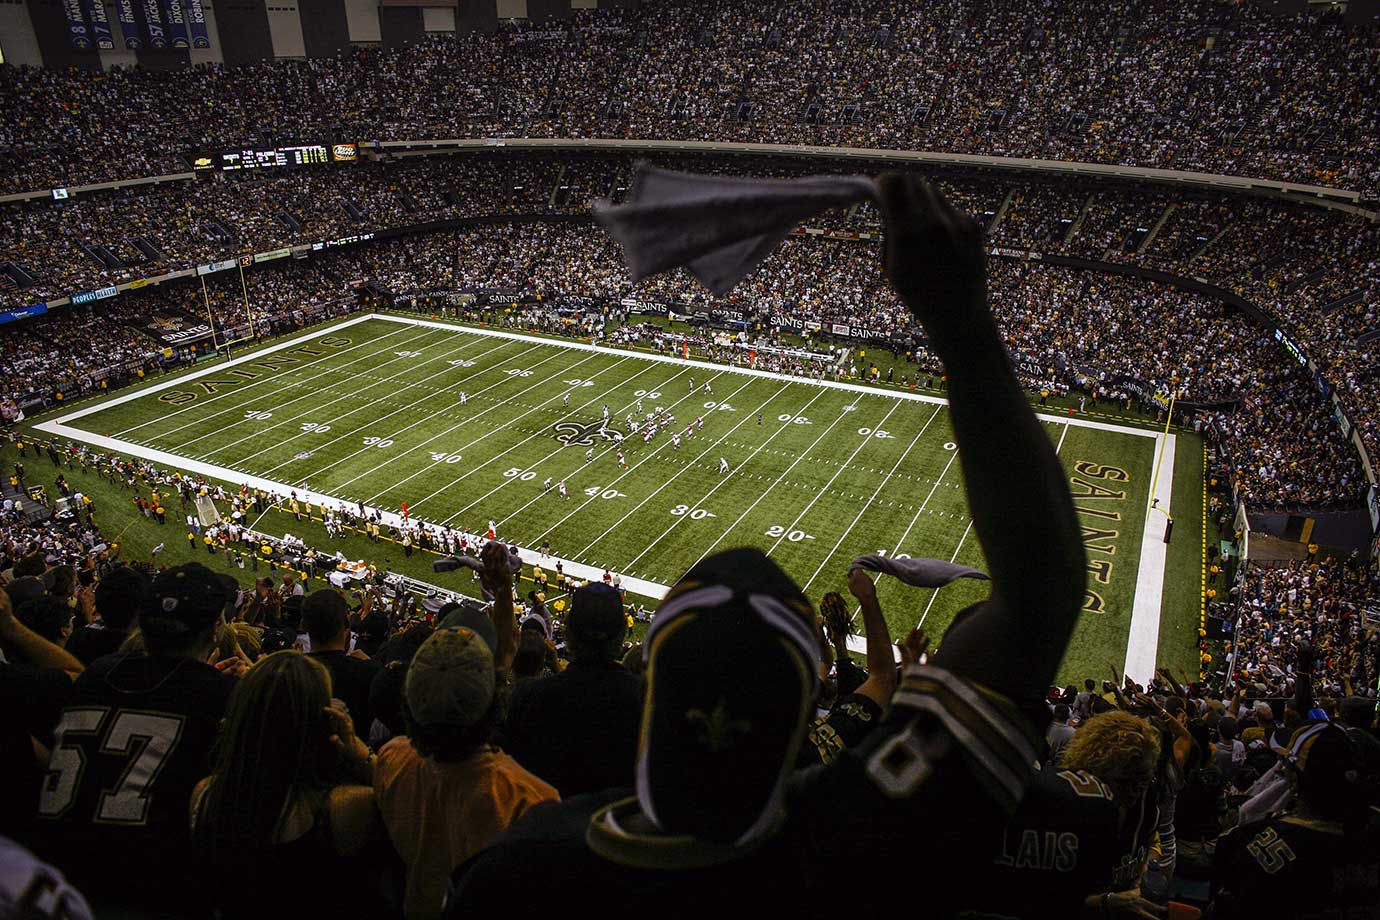 Sept. 25, 2006: Saints fans cheer during the team's first game back at the Superdome.